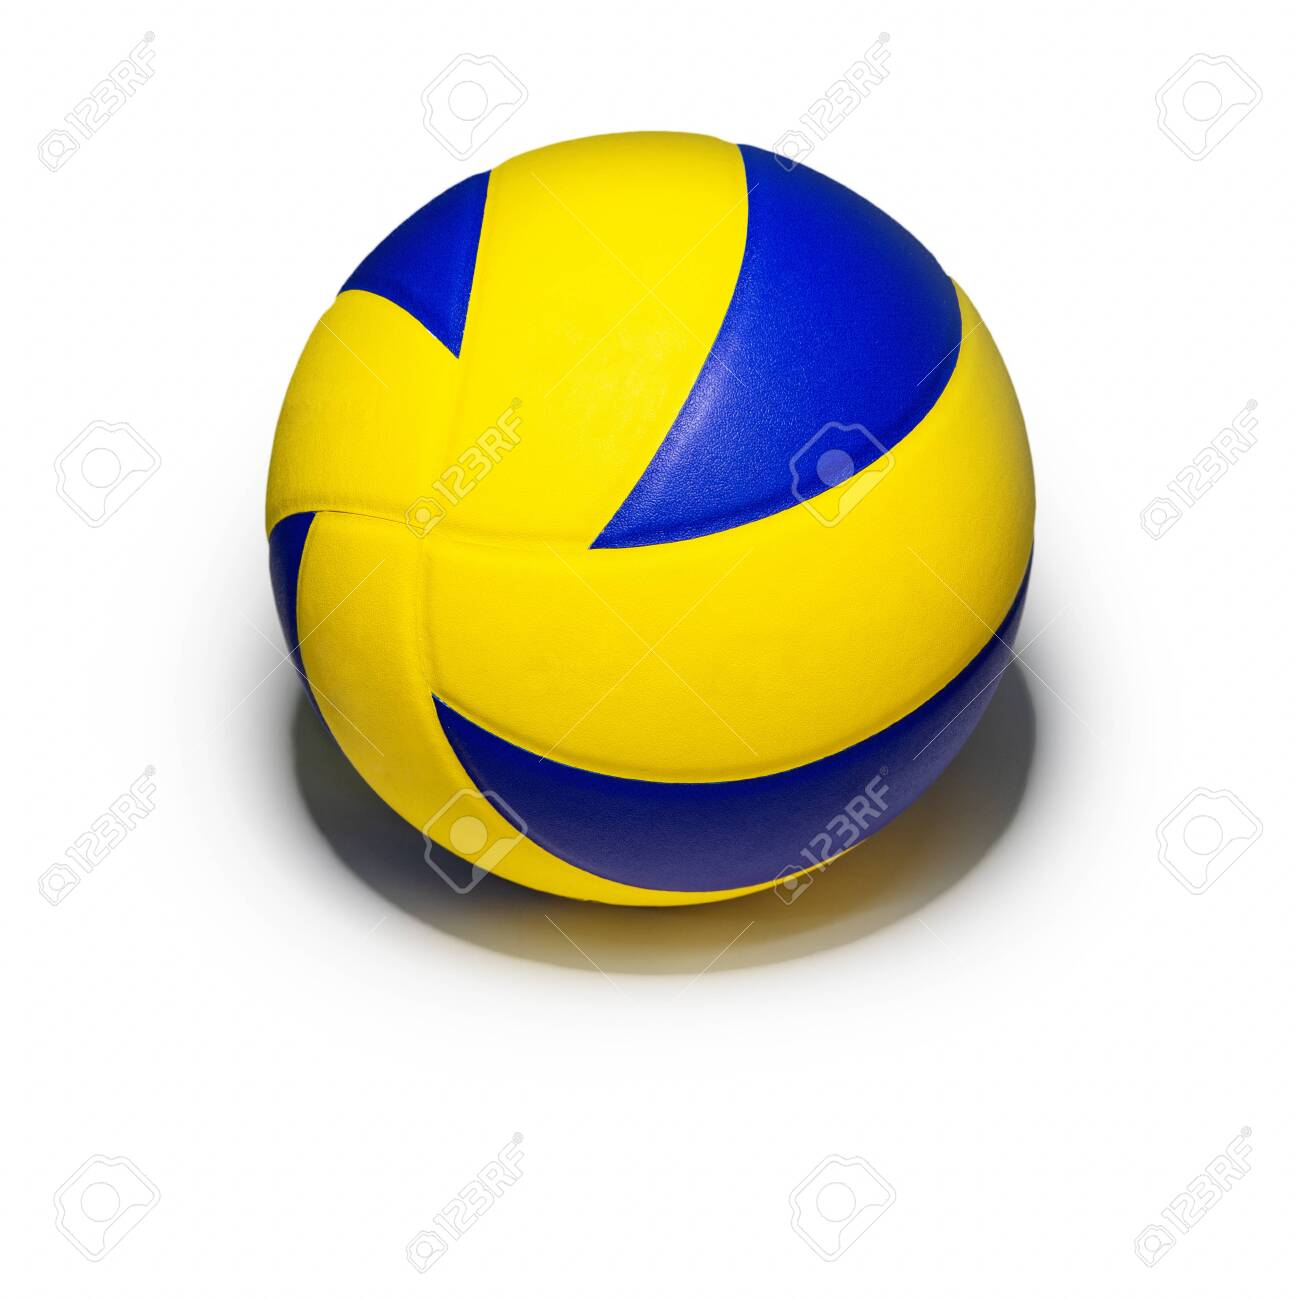 Closeup yellow blue volleyball sports equipment with light shining from above, with shadow below, isolated leather volley ball object on a square white background - 143664618